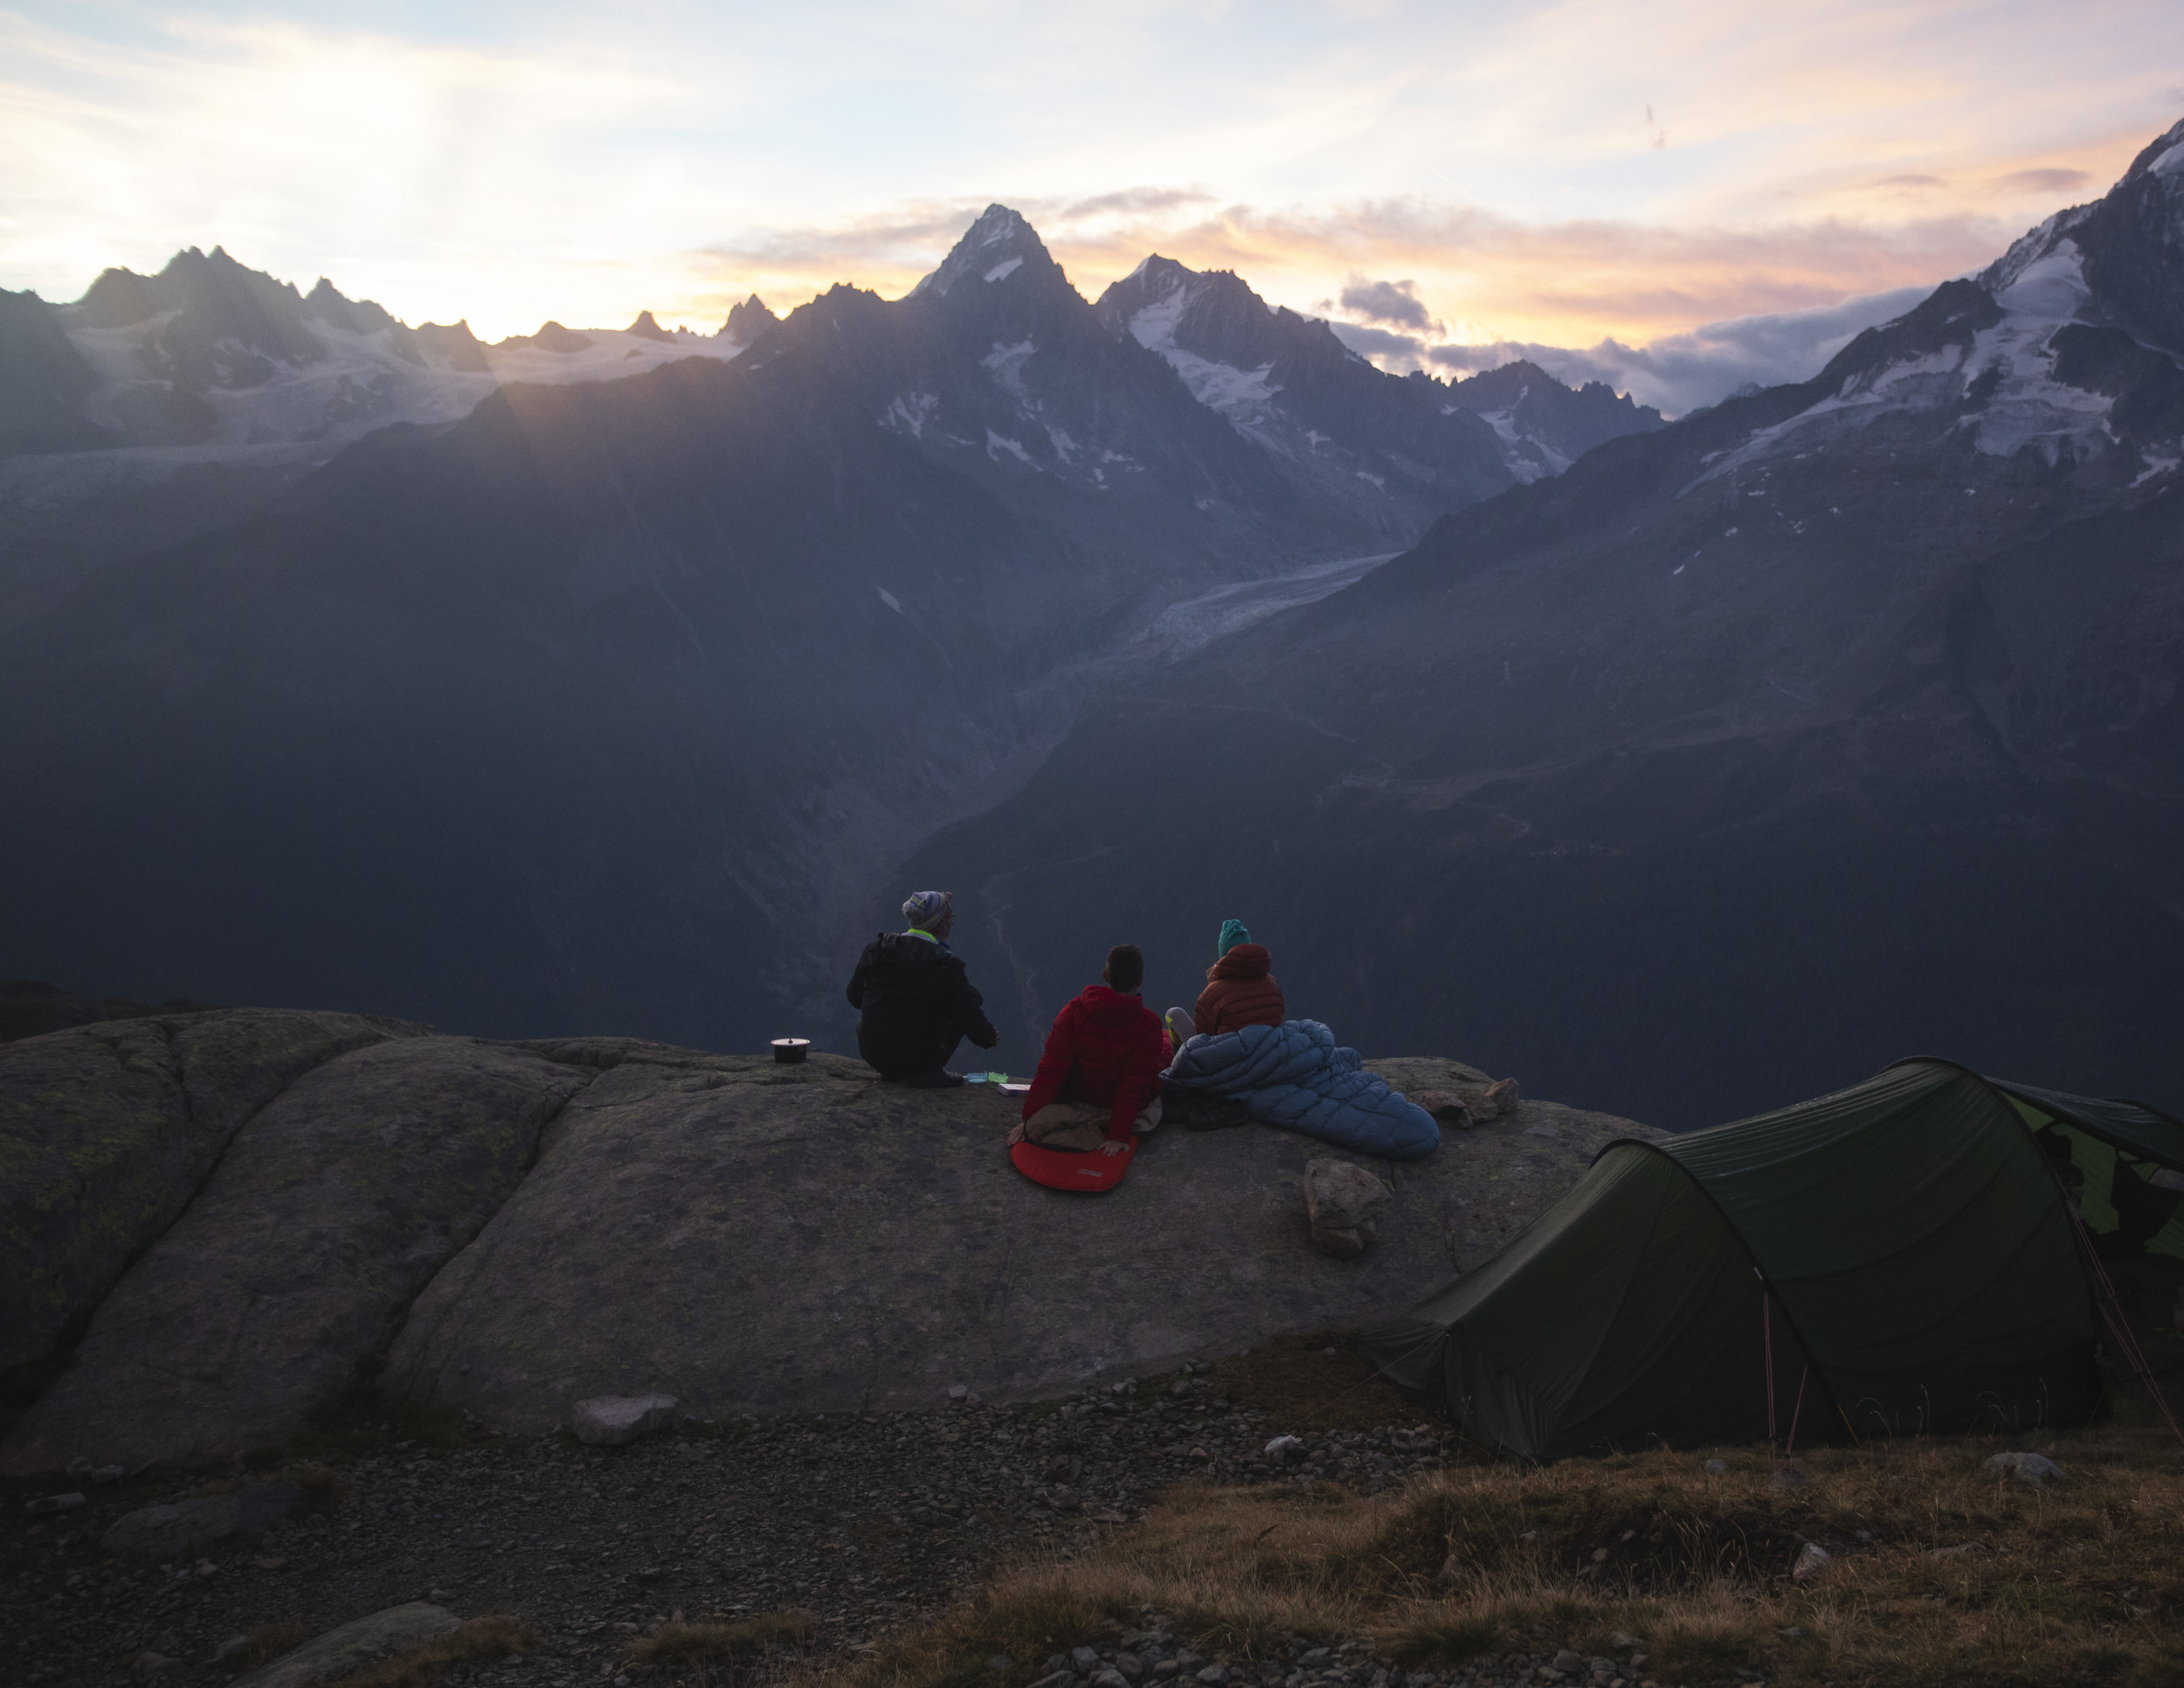 Looking out towards the glacier d'Argentiere as the sunrises.